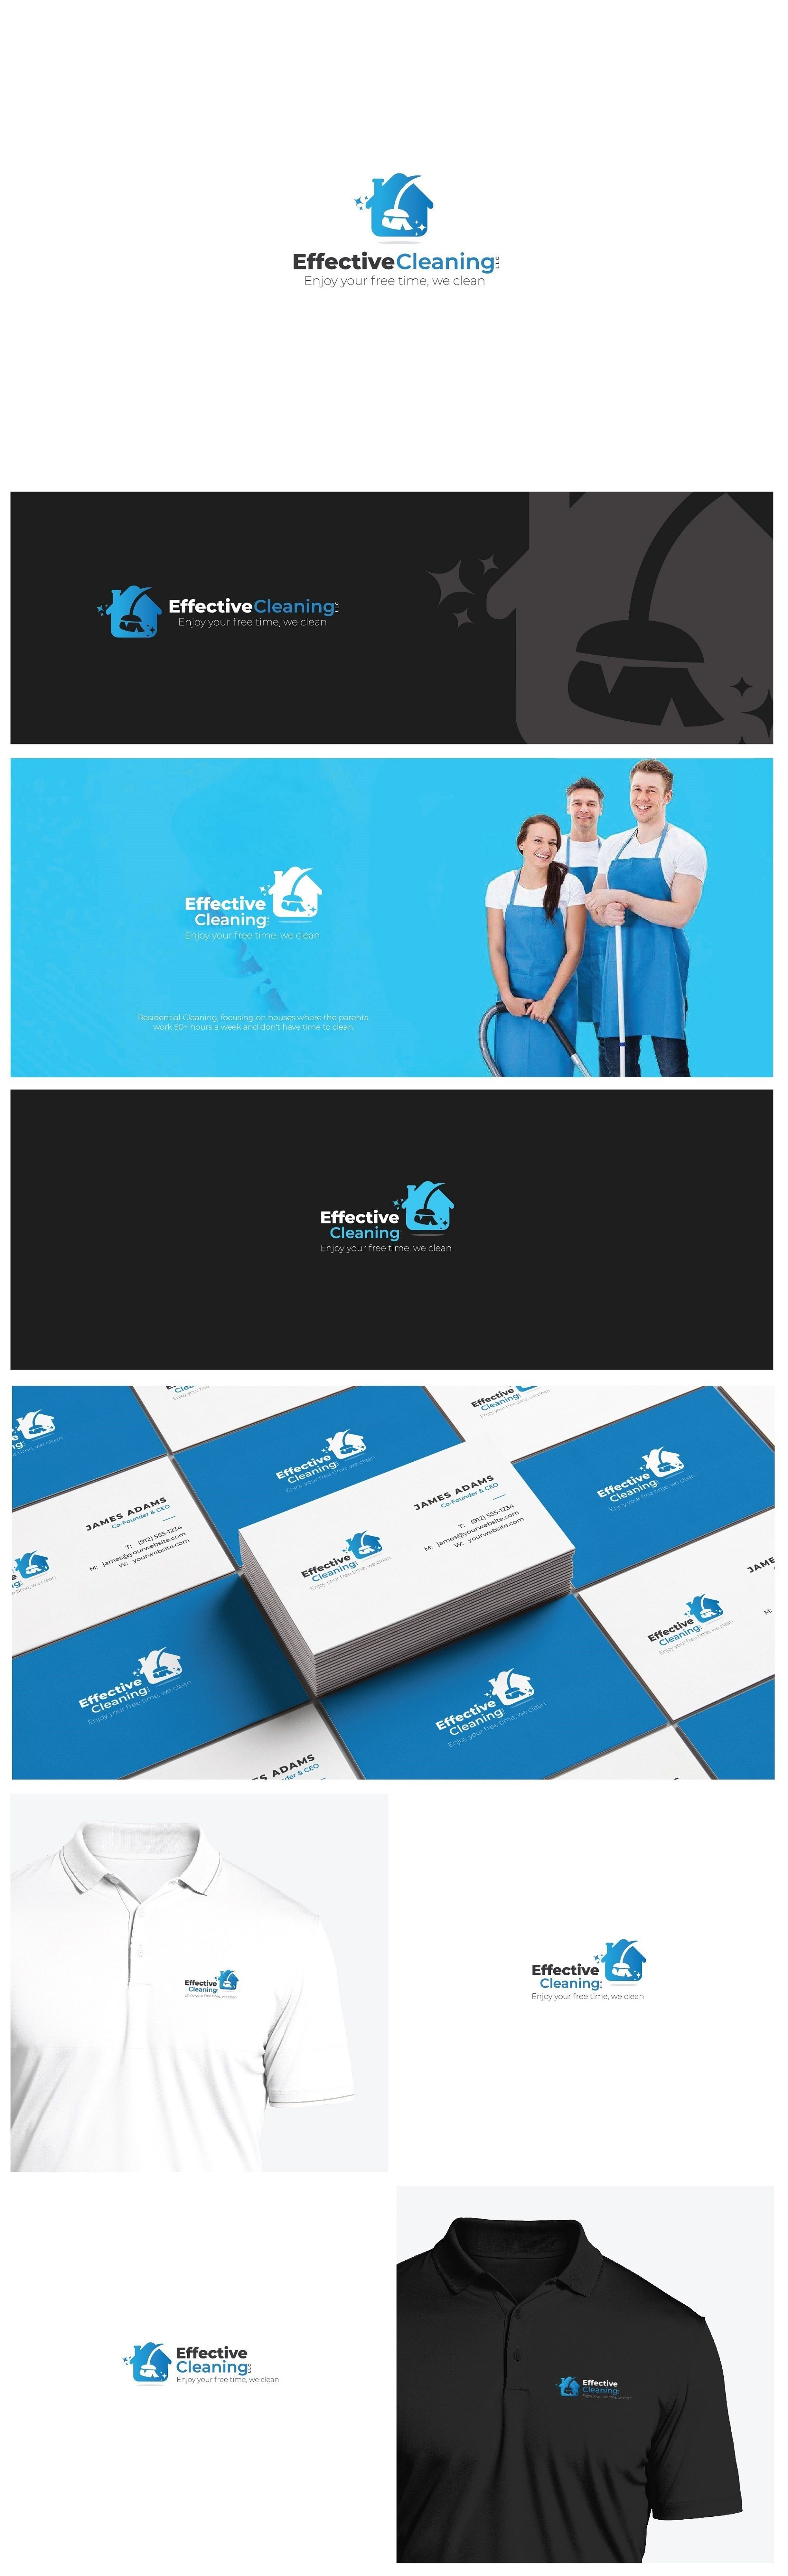 Designs Design A Friendly Yet Modern And Professional Logo For A House Cleaning Business In 2020 Cleaning Company Logo House Cleaning Company Logo Design Contest